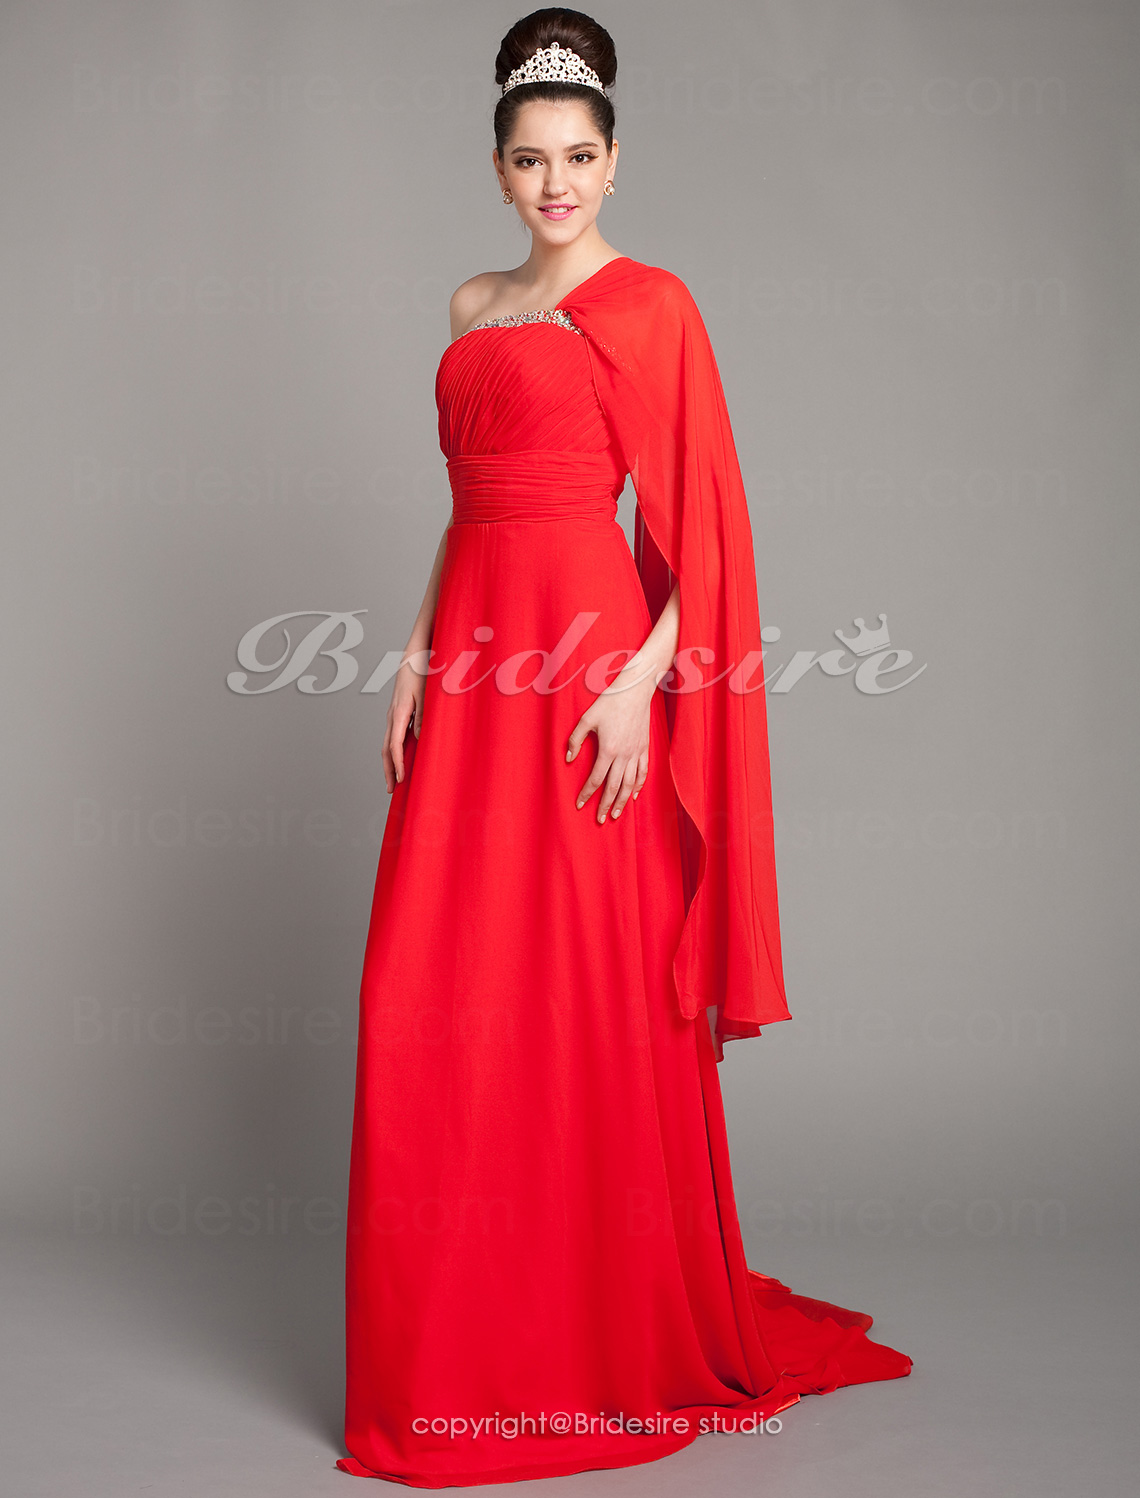 Sheath/Column Chiffon Court Train One Shoulder Evening Dress With Beading